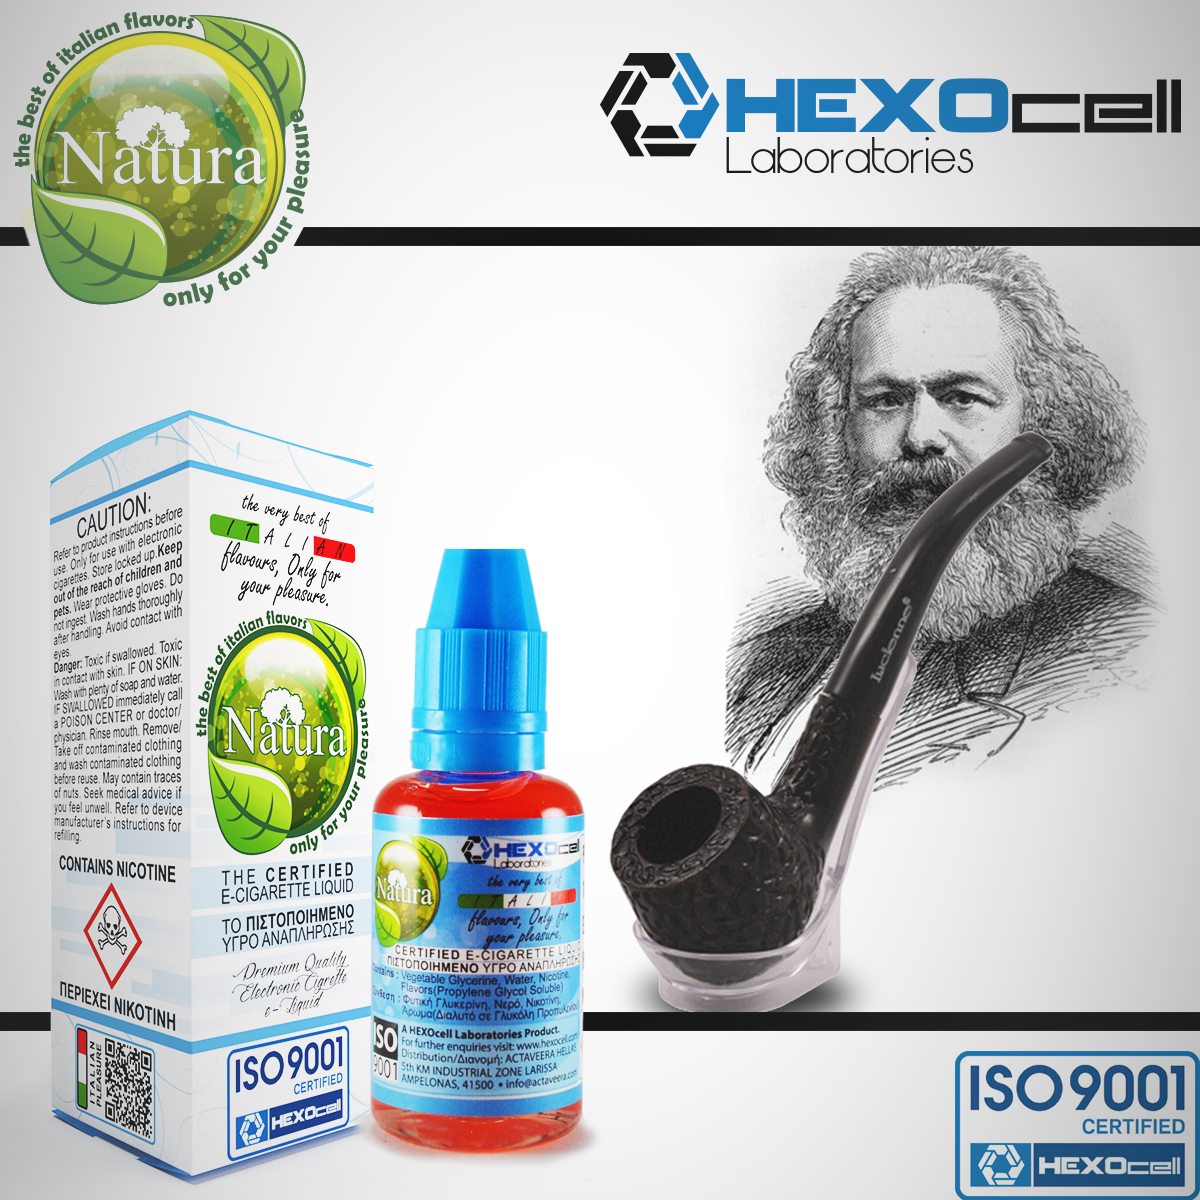 e6b05354c472ac 30ml MARXBRO 0mg eLiquid (Without Nicotine) - Natura eLiquid by HEXOcell  image 1 ...